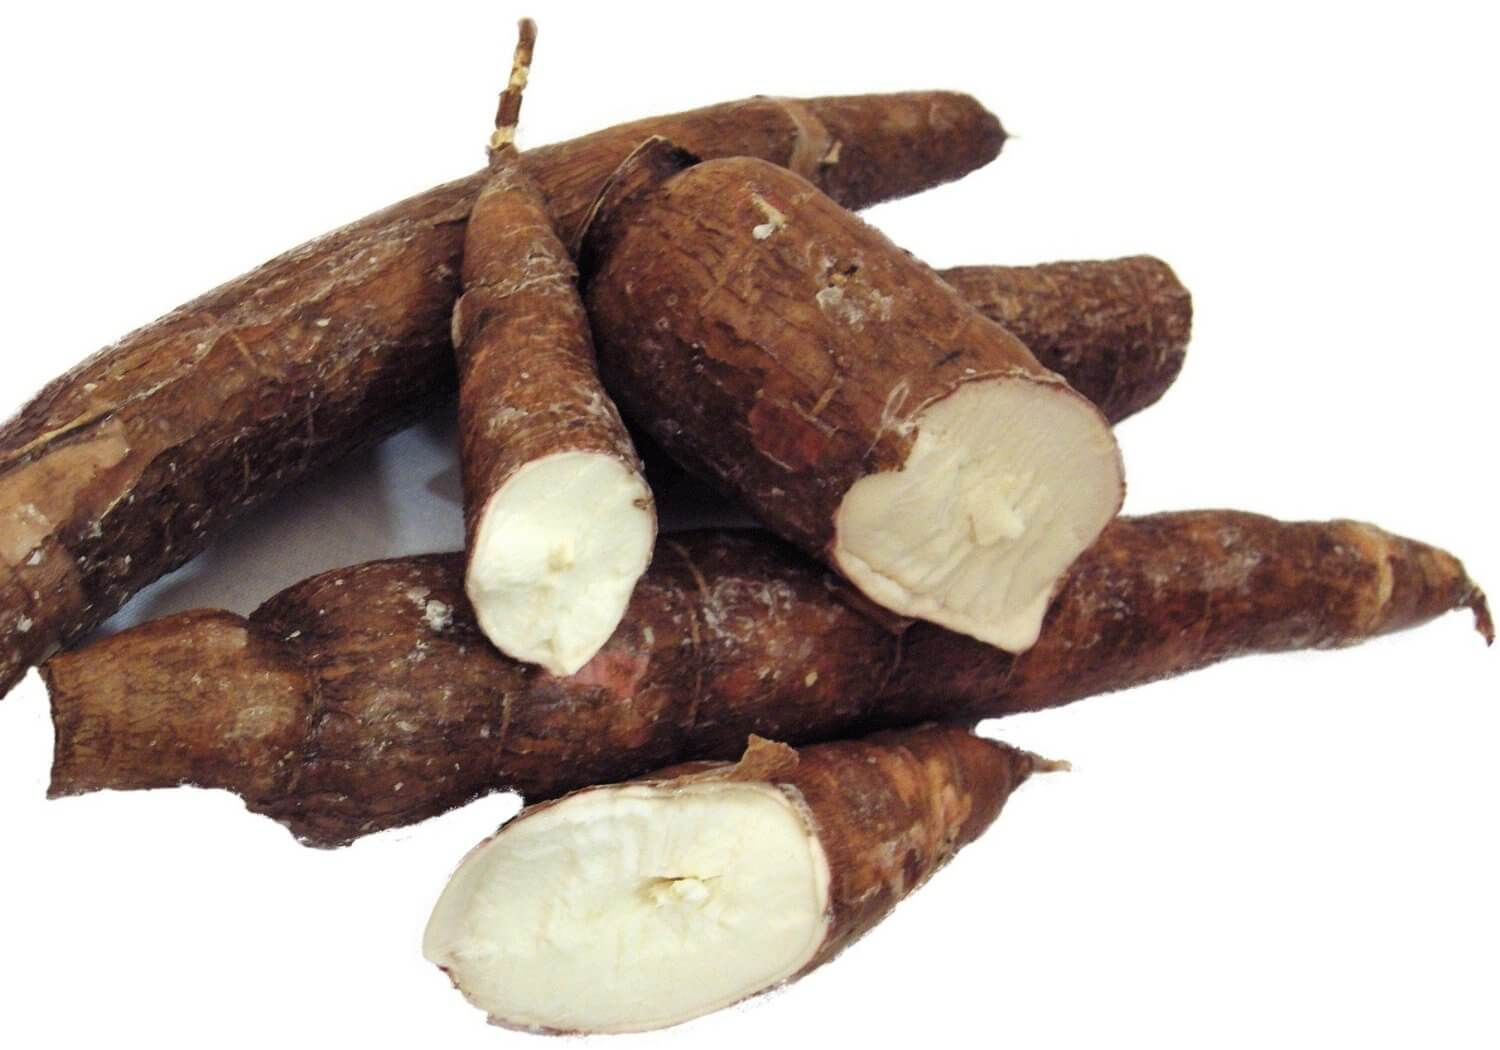 crop-farming-business-ideas-cassava-farming-business-idea